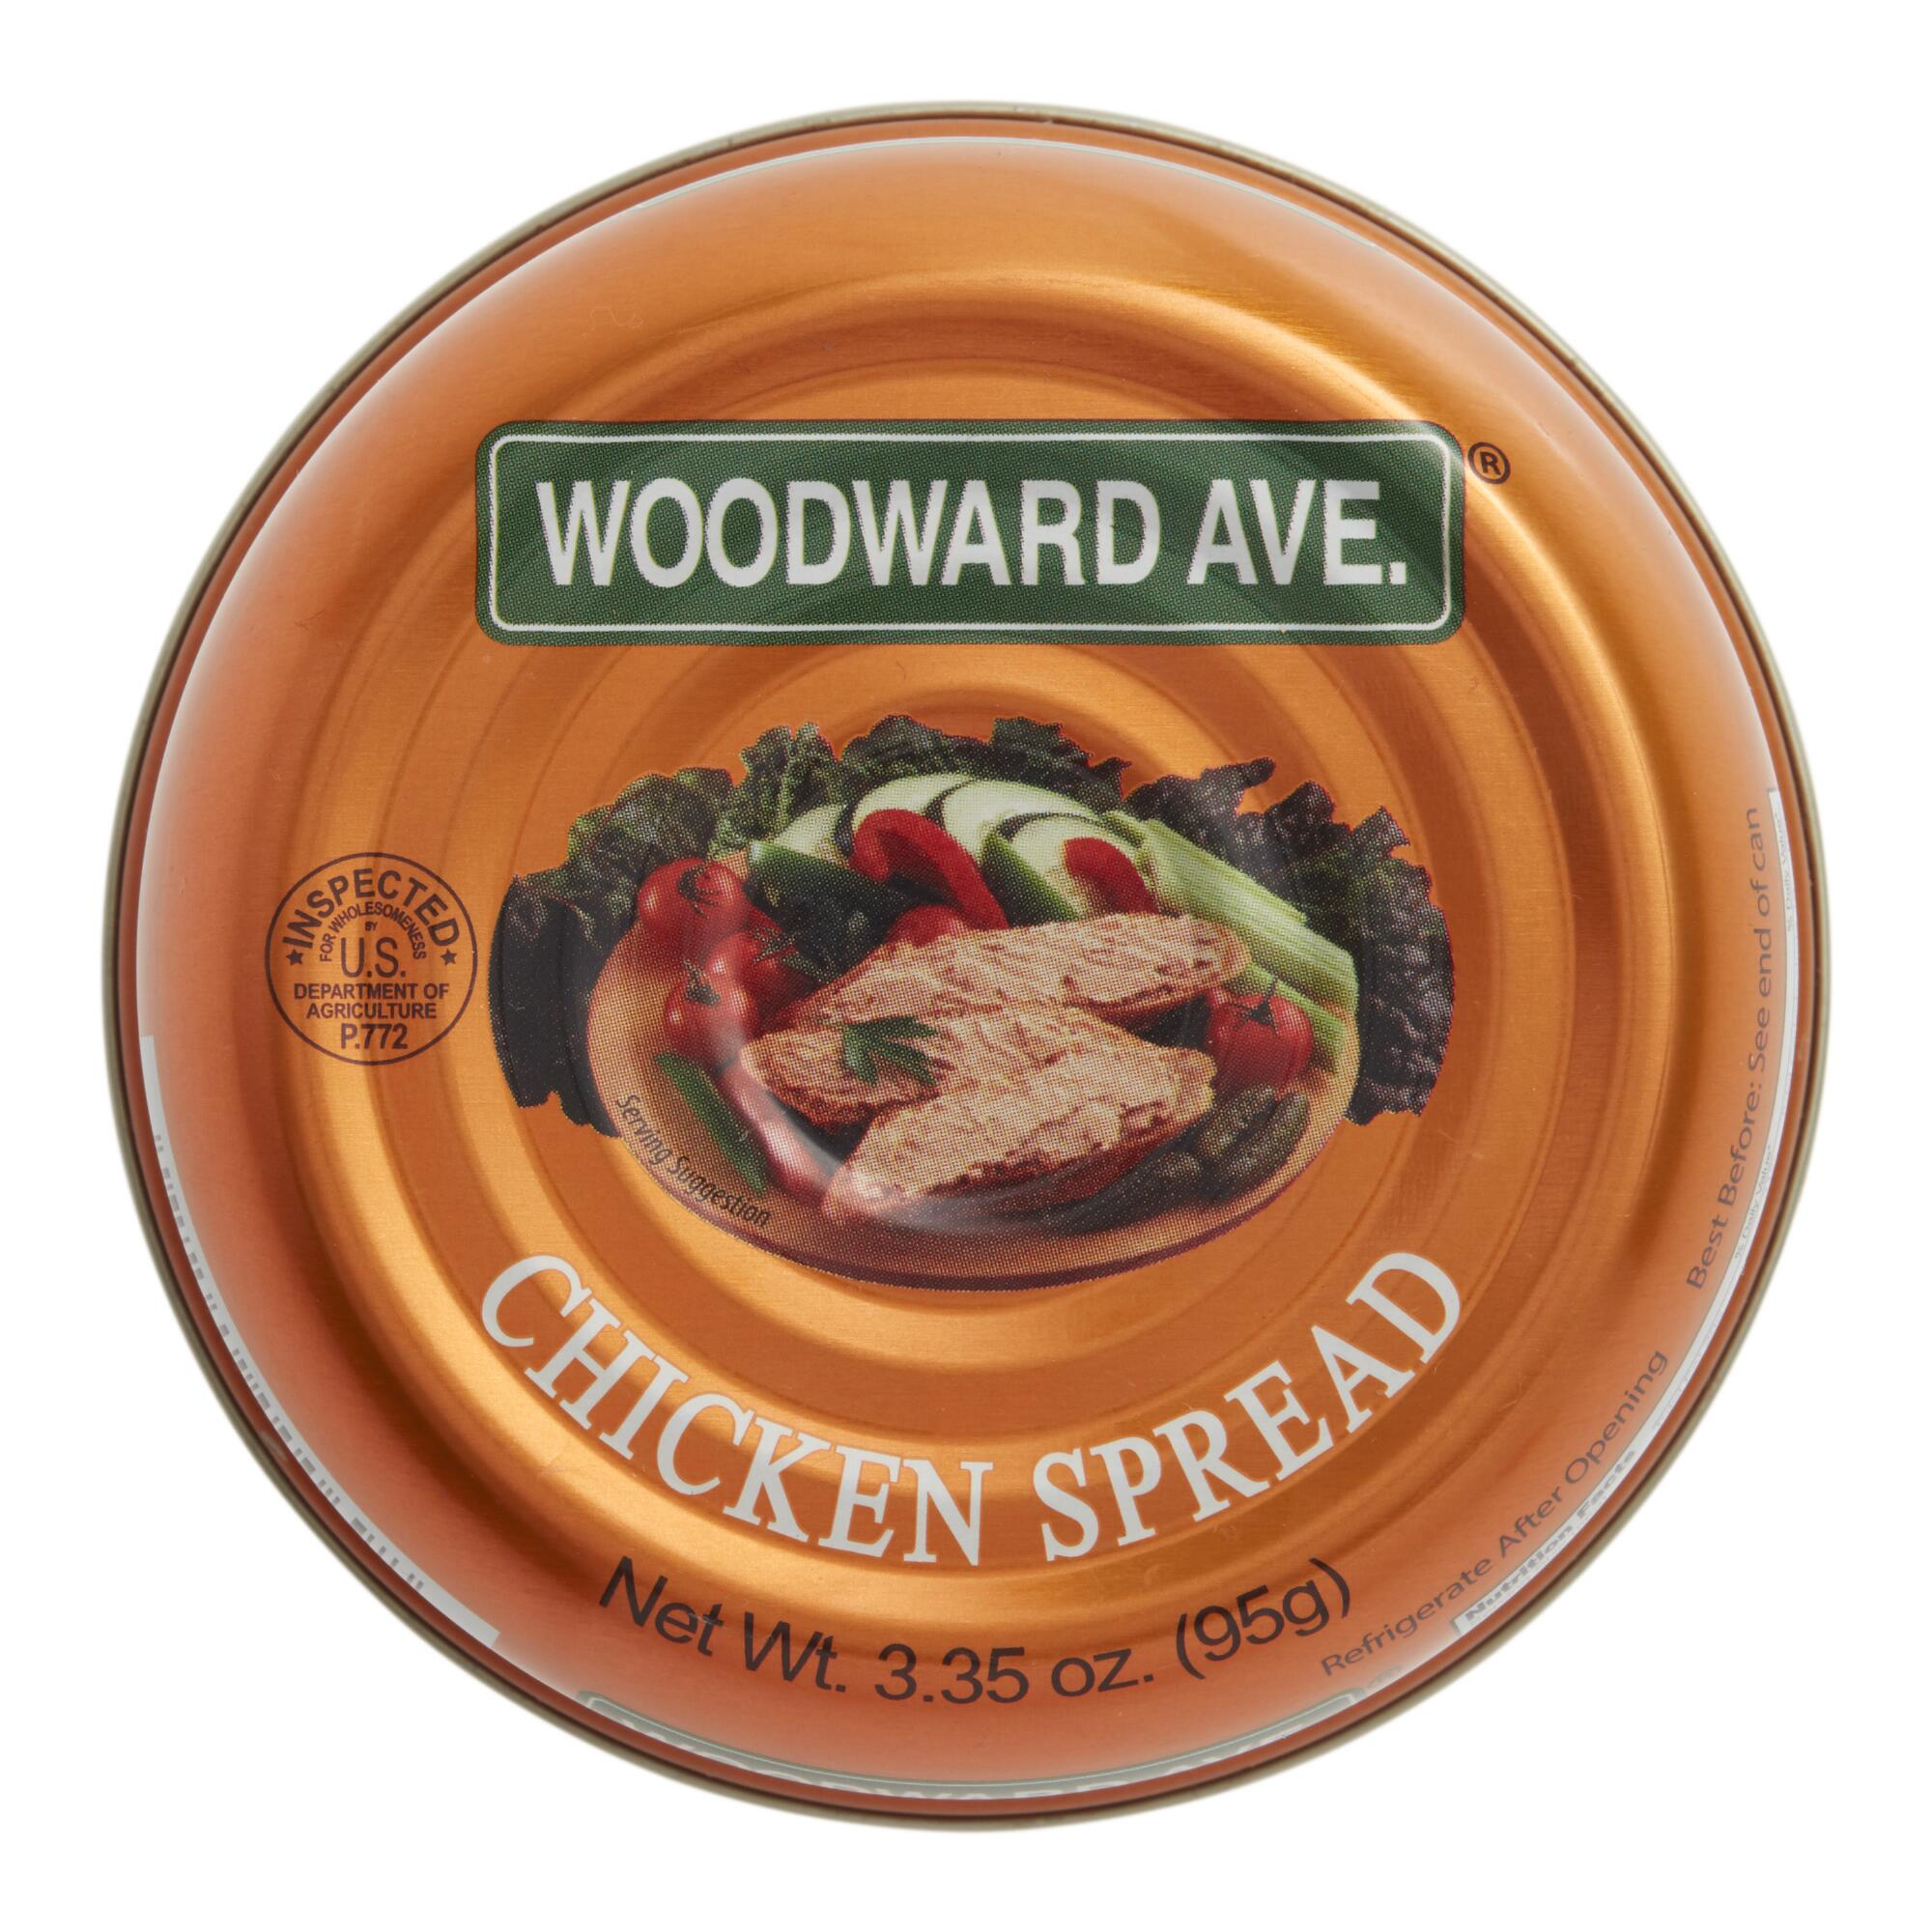 chicken spread.jpg